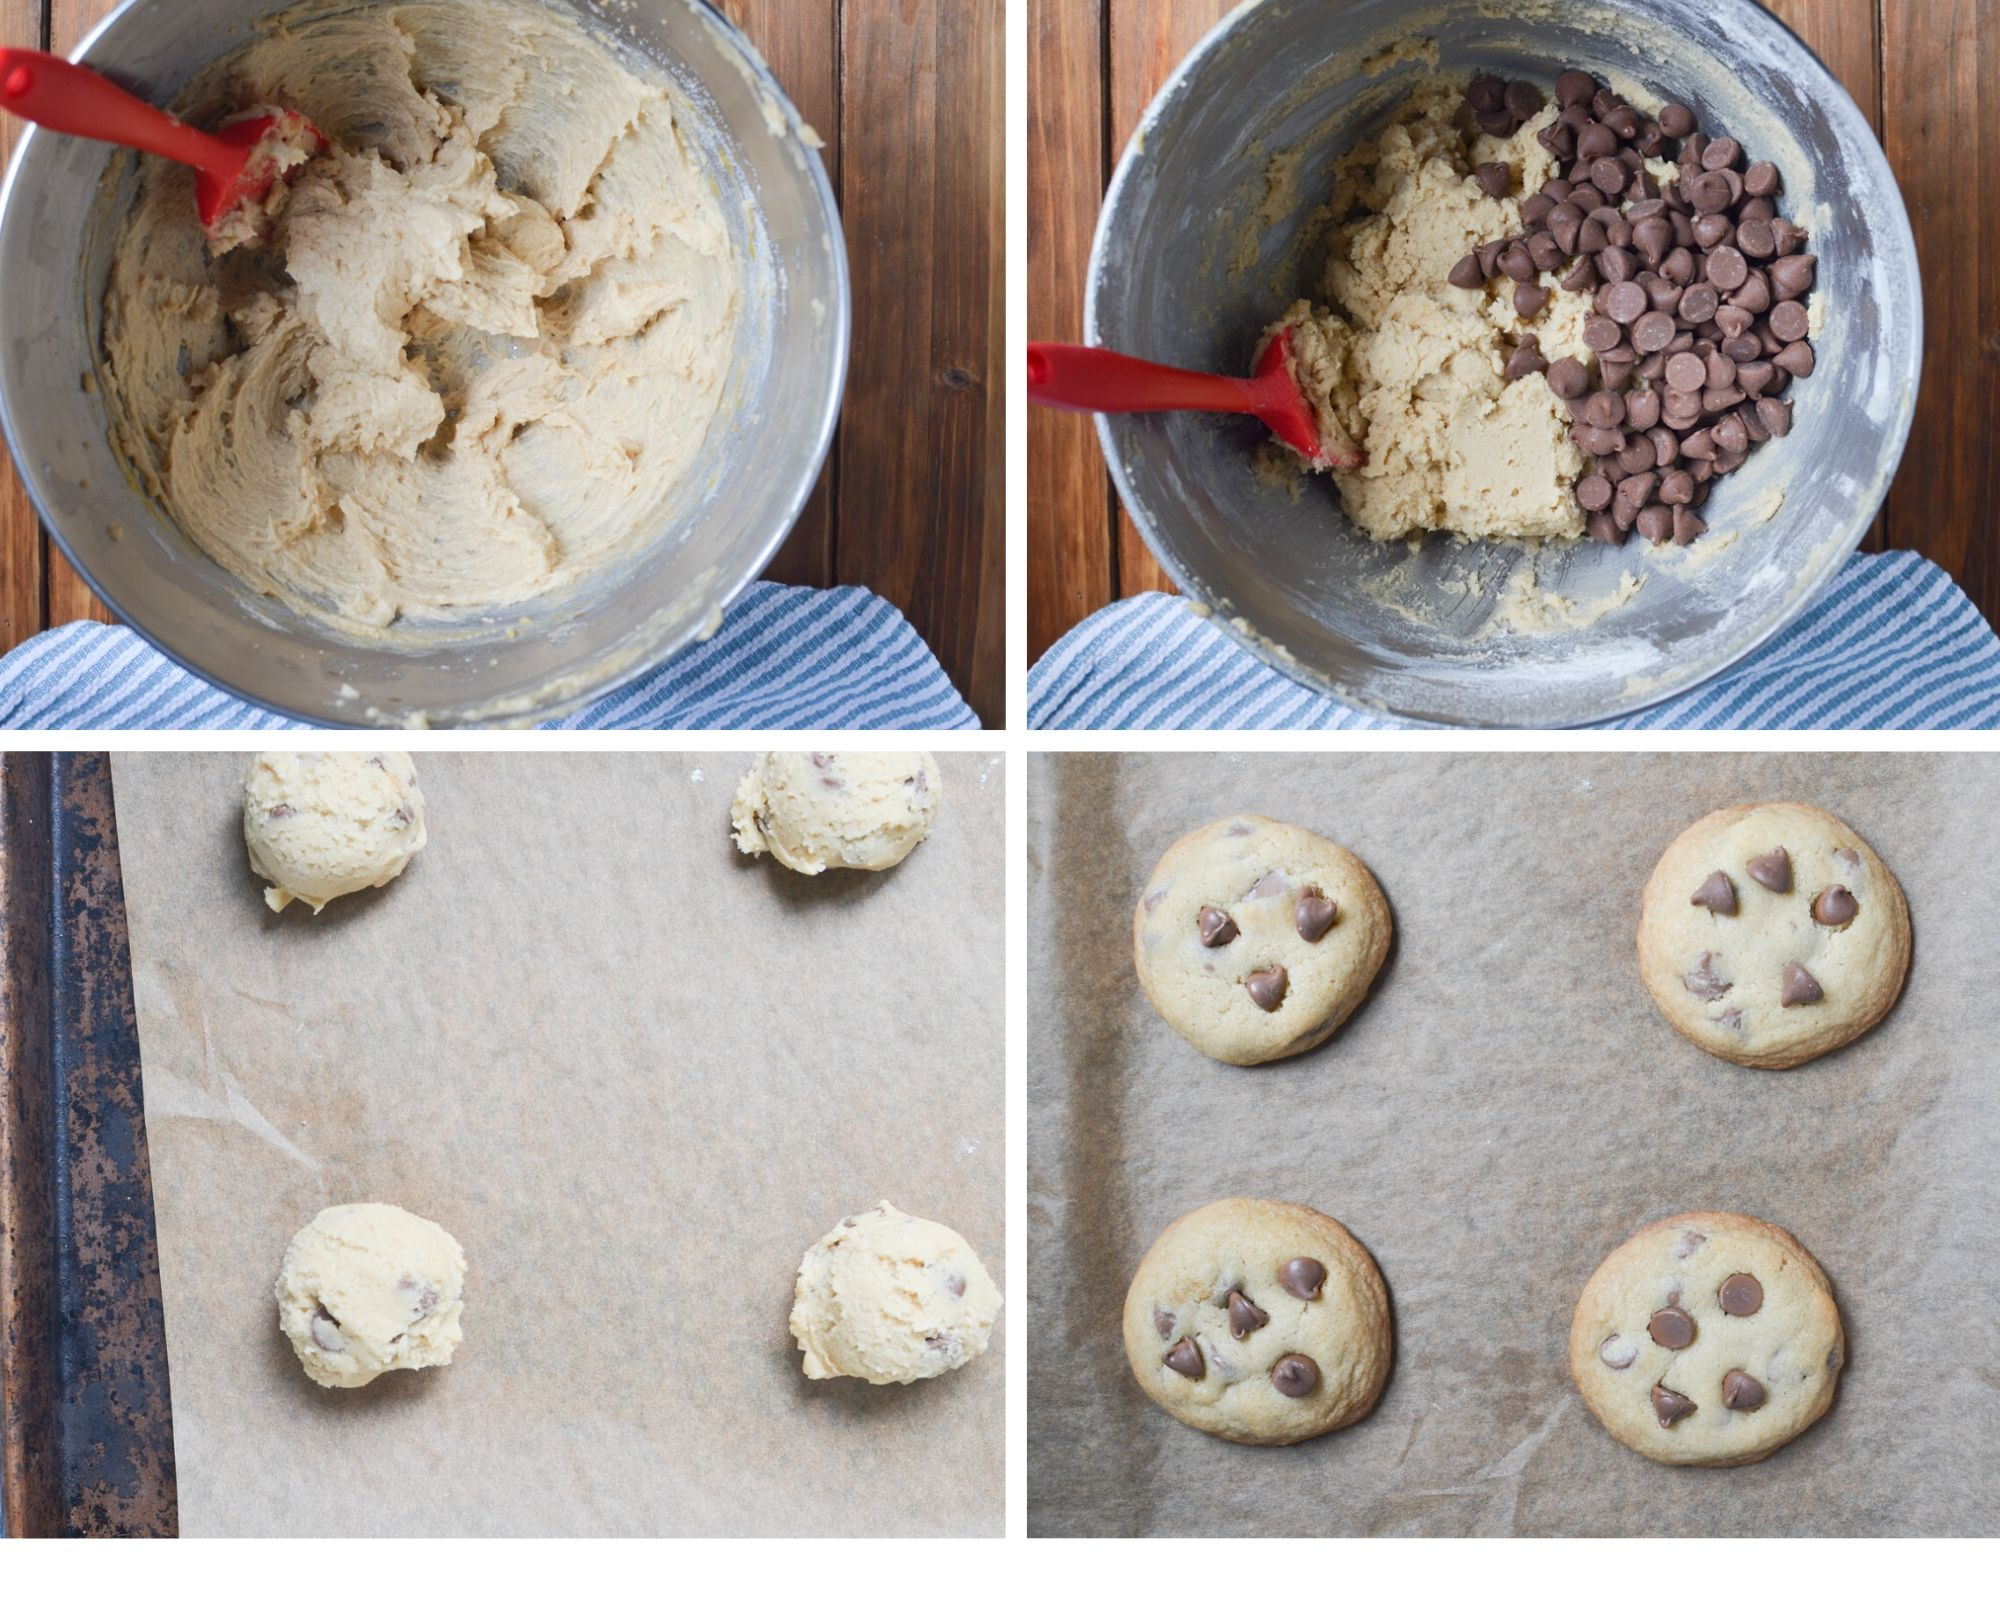 steps to making chocolate chip cookies.